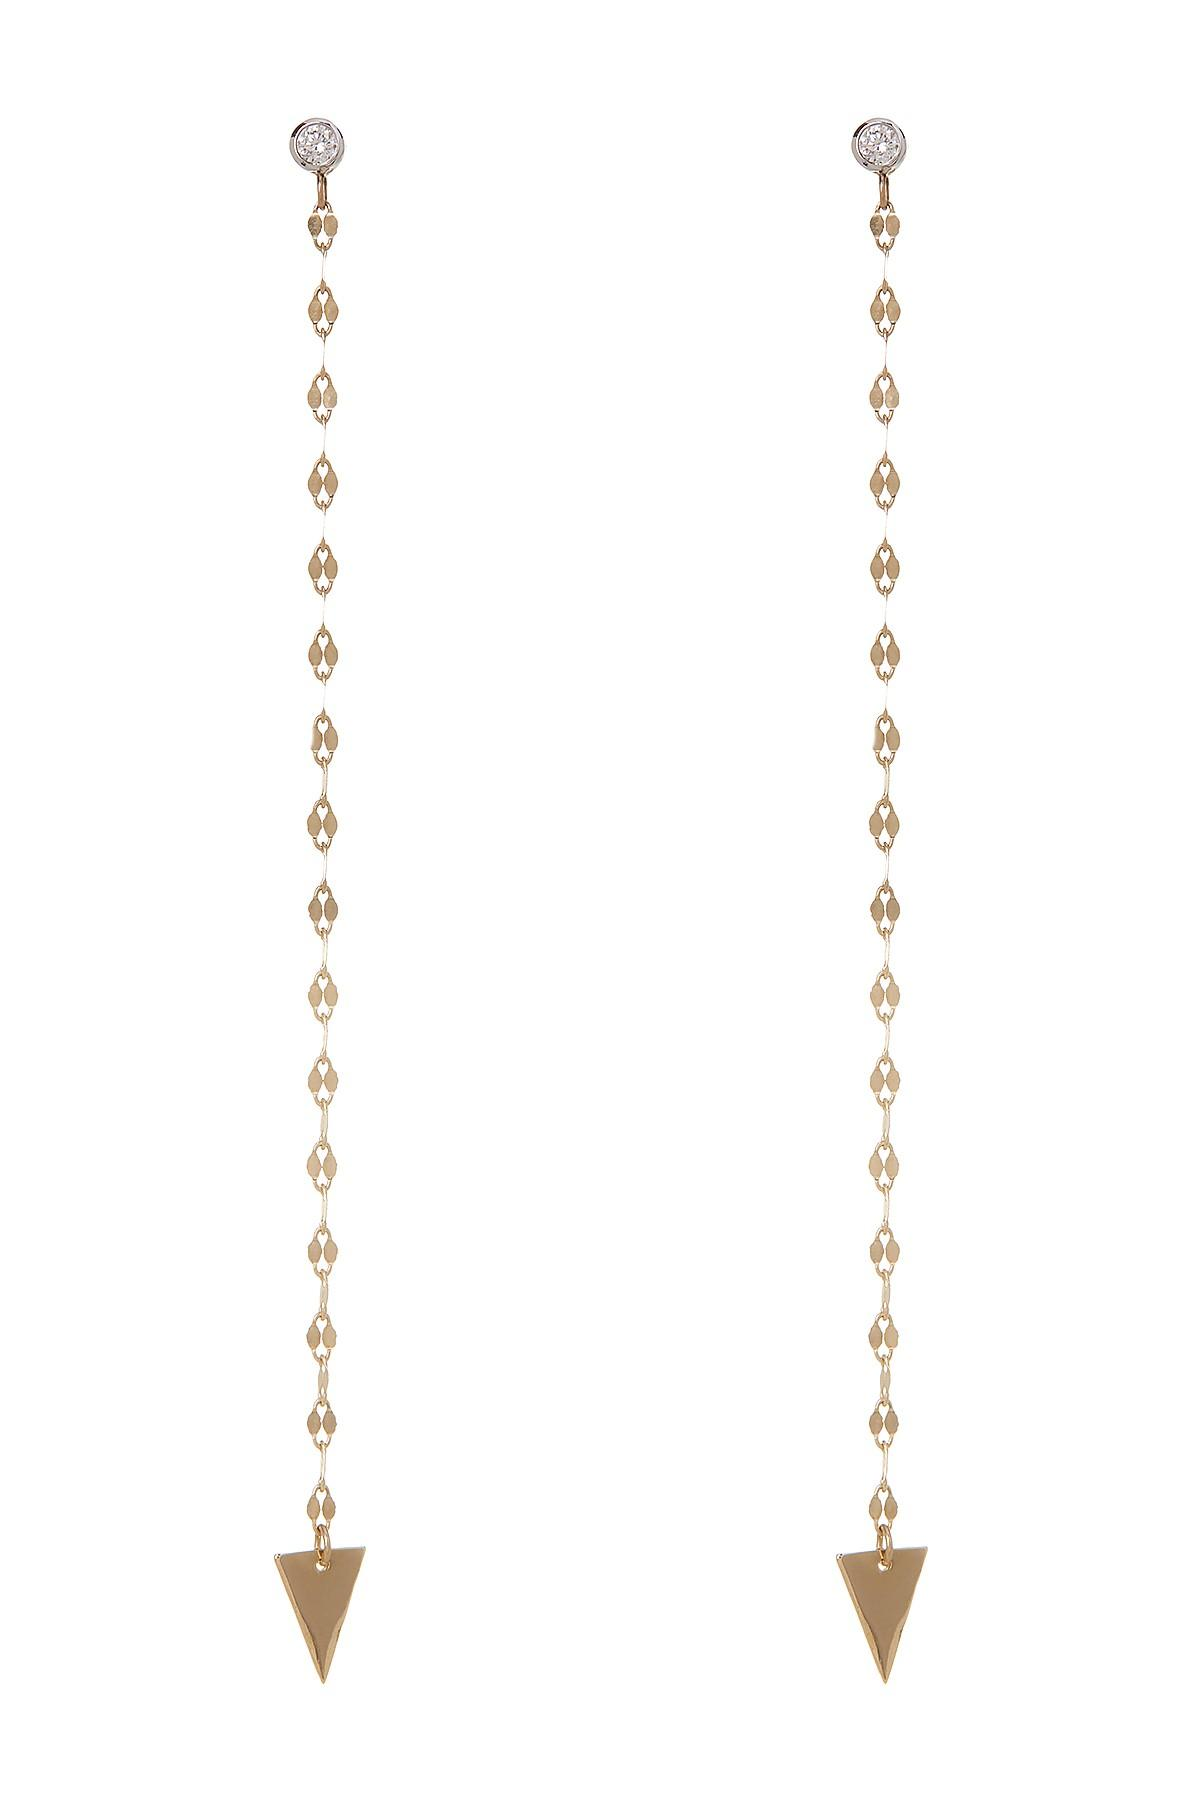 Lyst - Lana Jewelry 14k Gold Vista Crystal Detail Chain ...